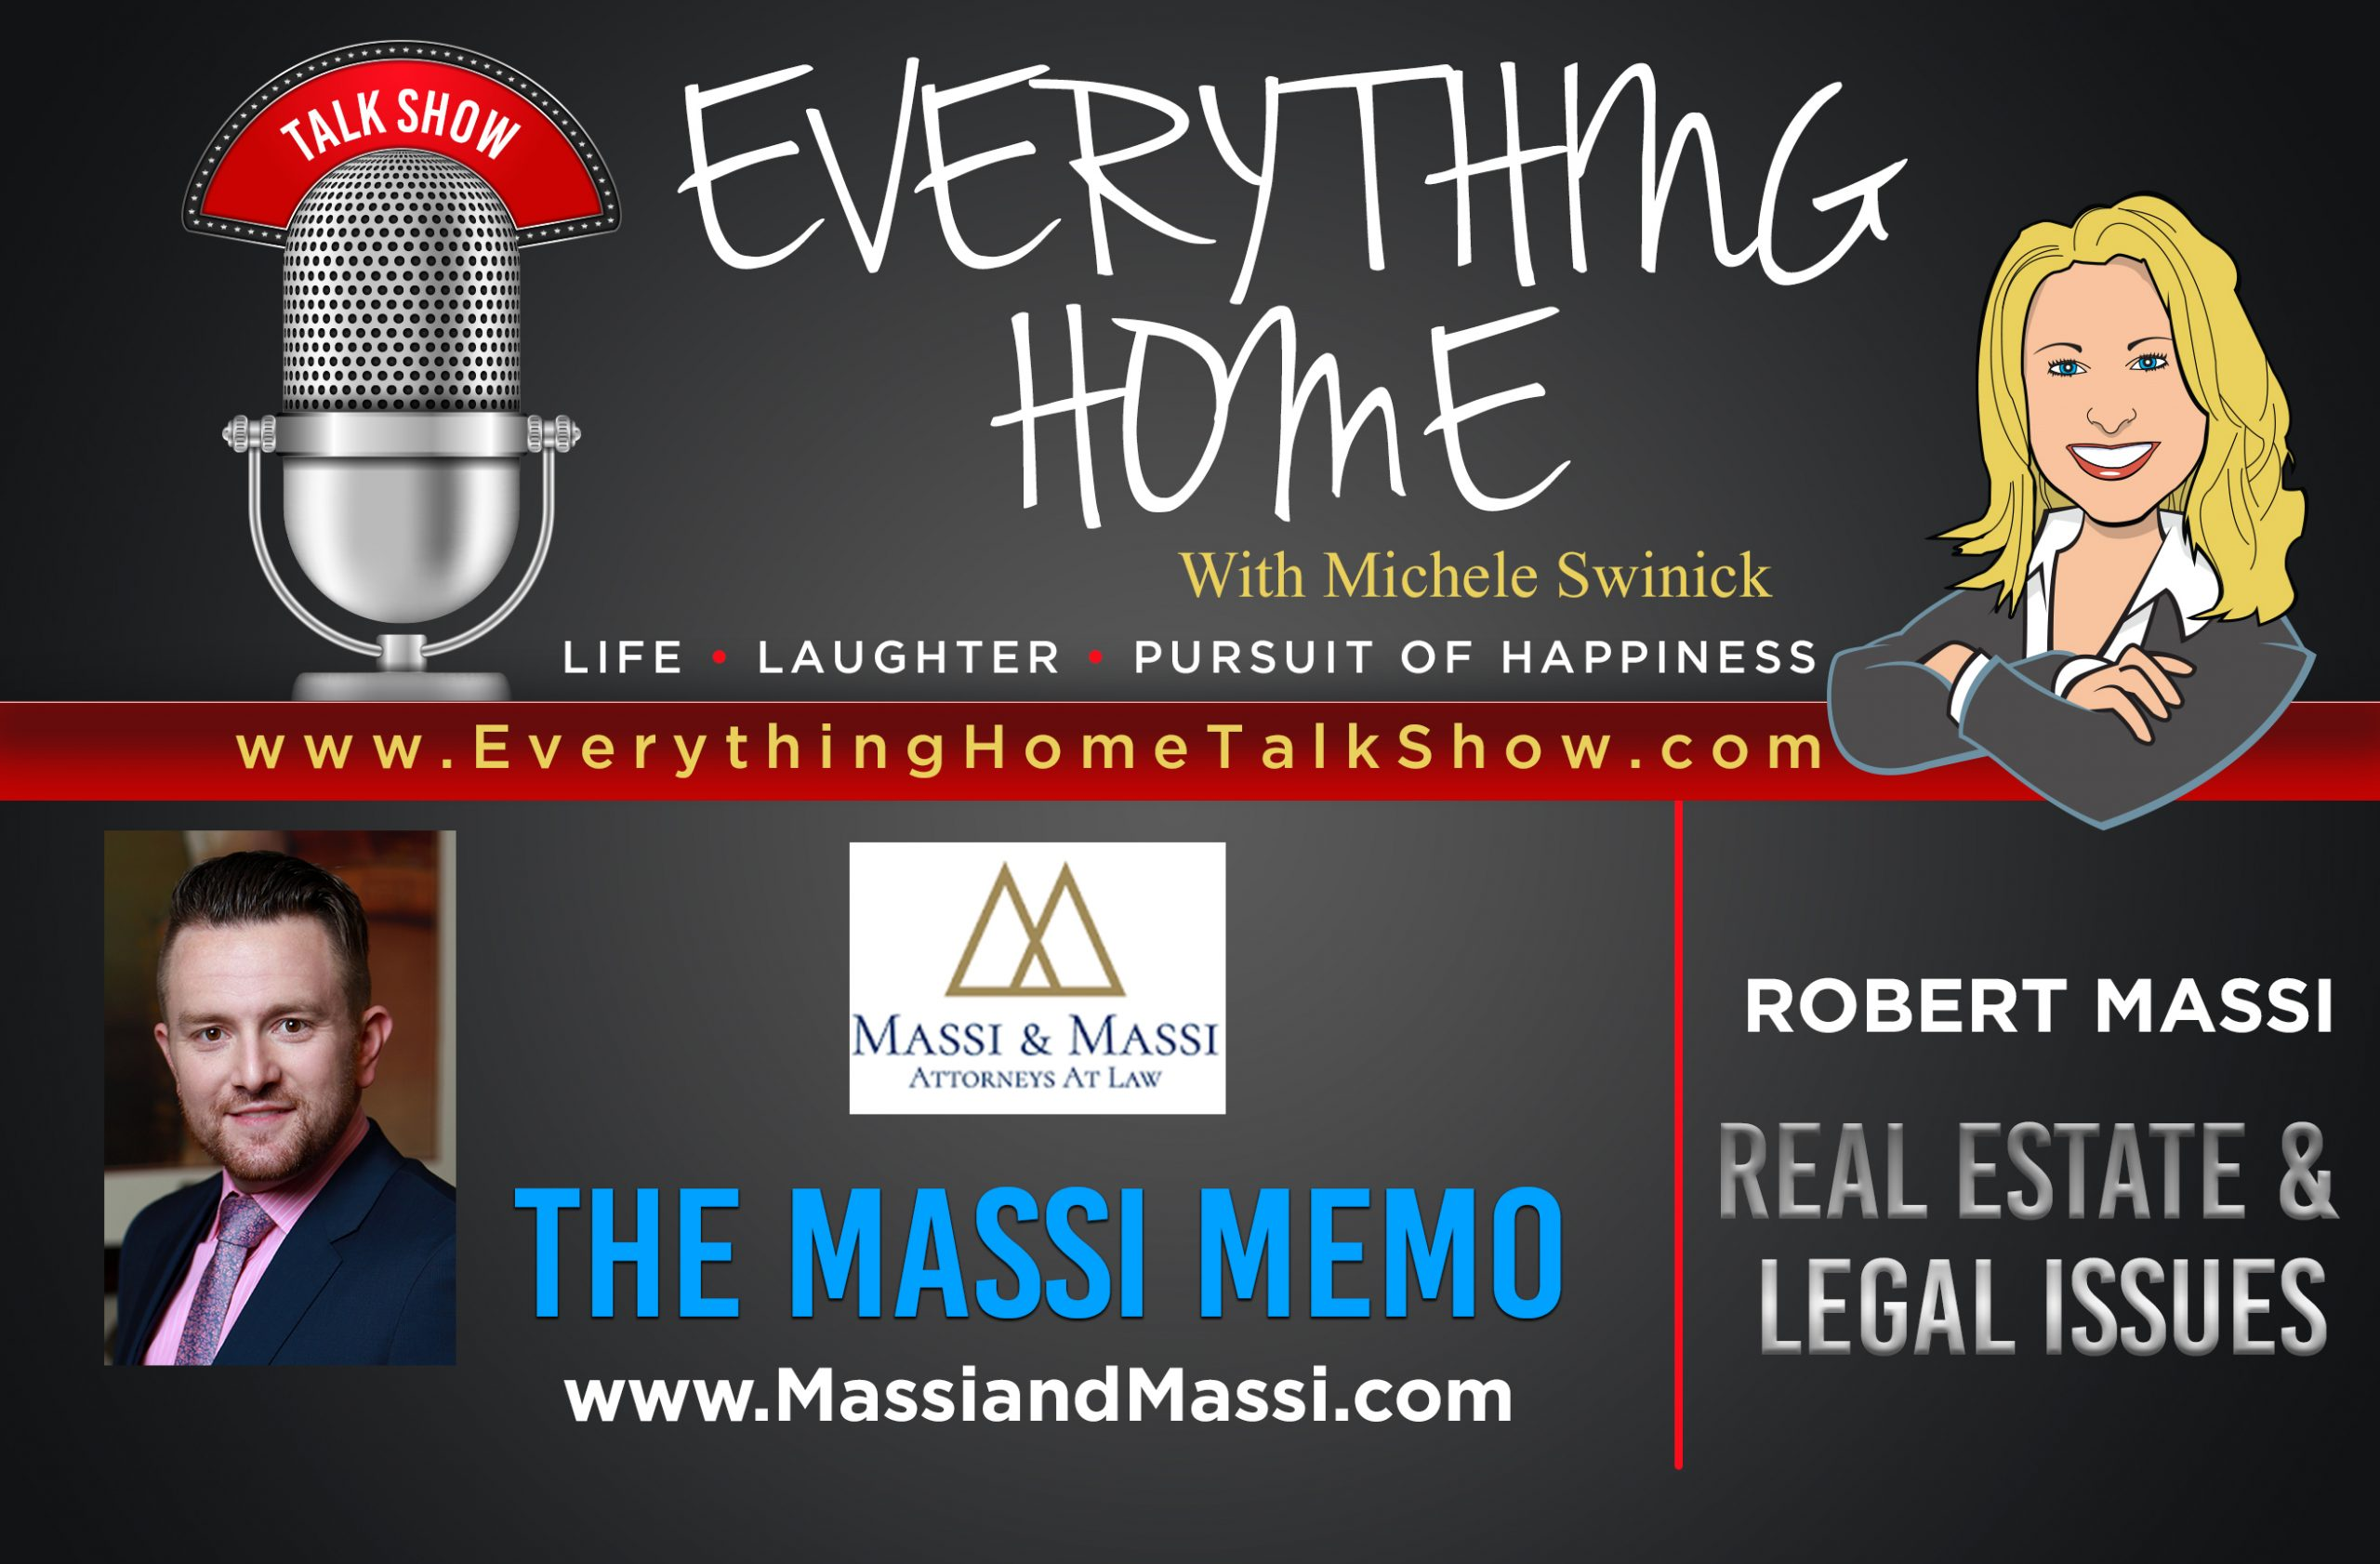 Everything Home Talk Radio Show & Podcast - THE MASSI MEMO - Robert Massi - BANNER